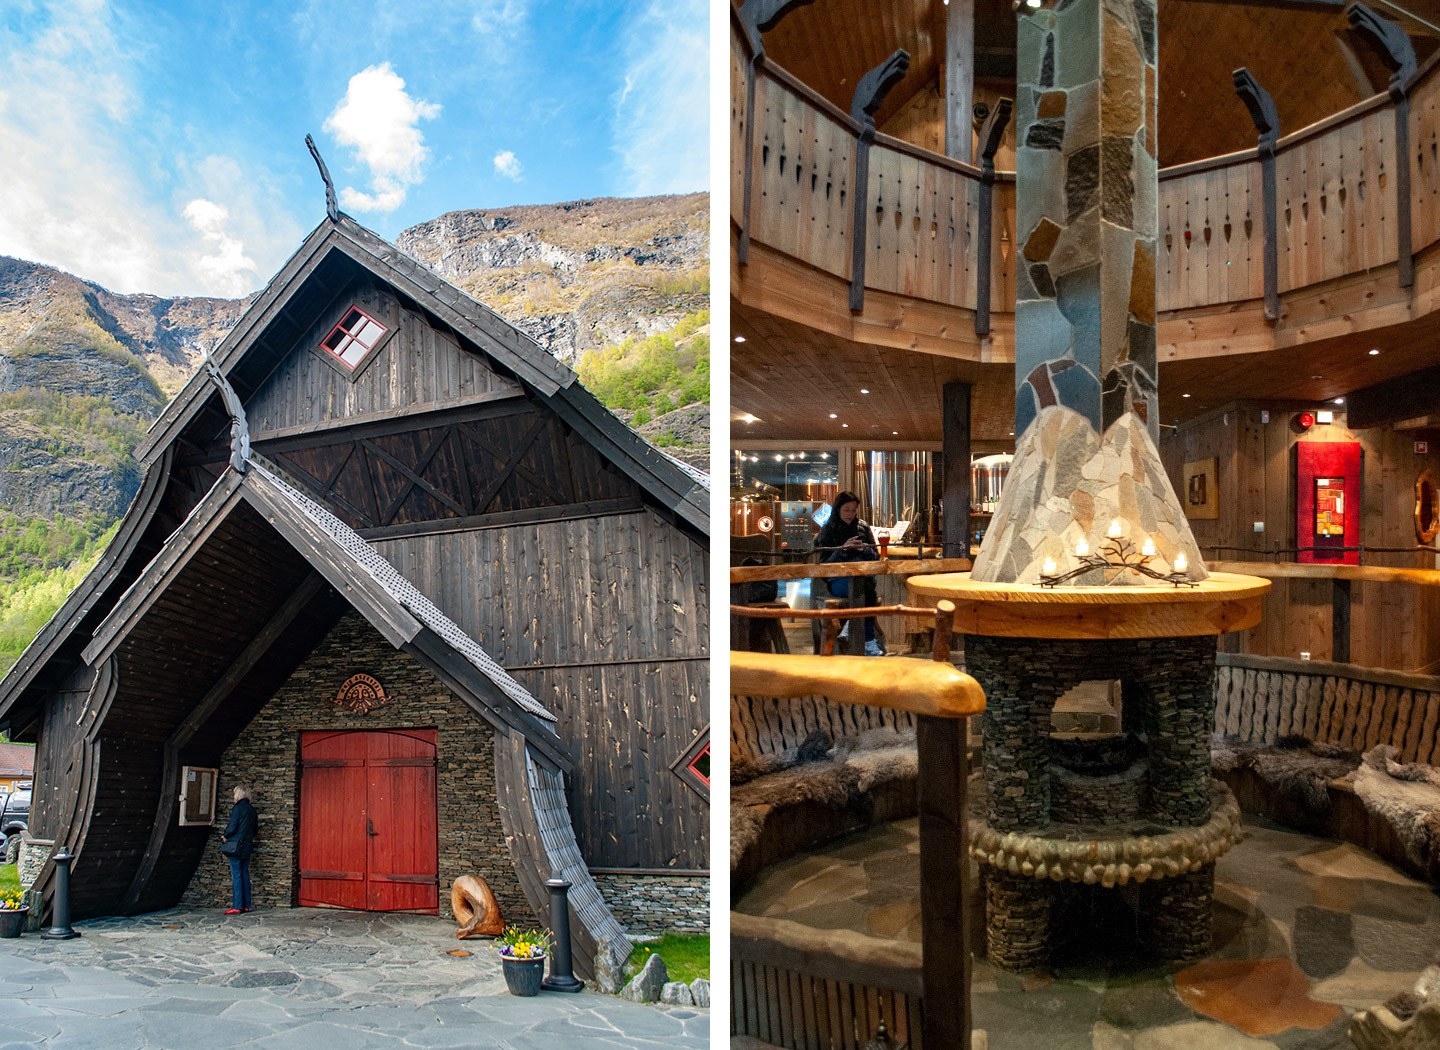 The Ægir brewery in Flam, Norway